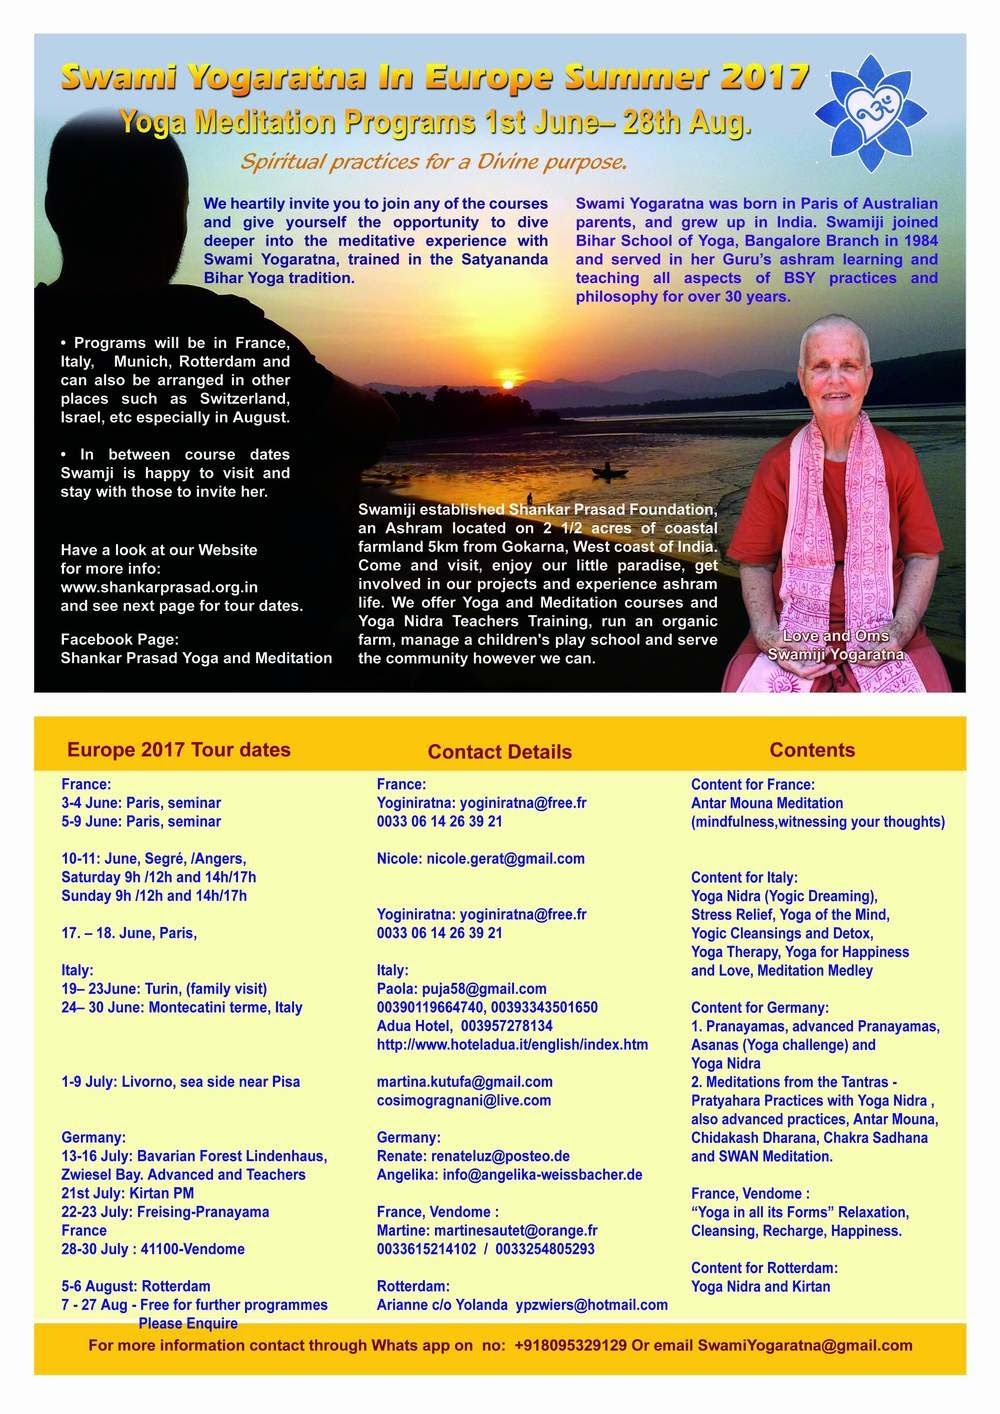 SWAMI YOGARATNA IN EUROPE SUMMER 2017